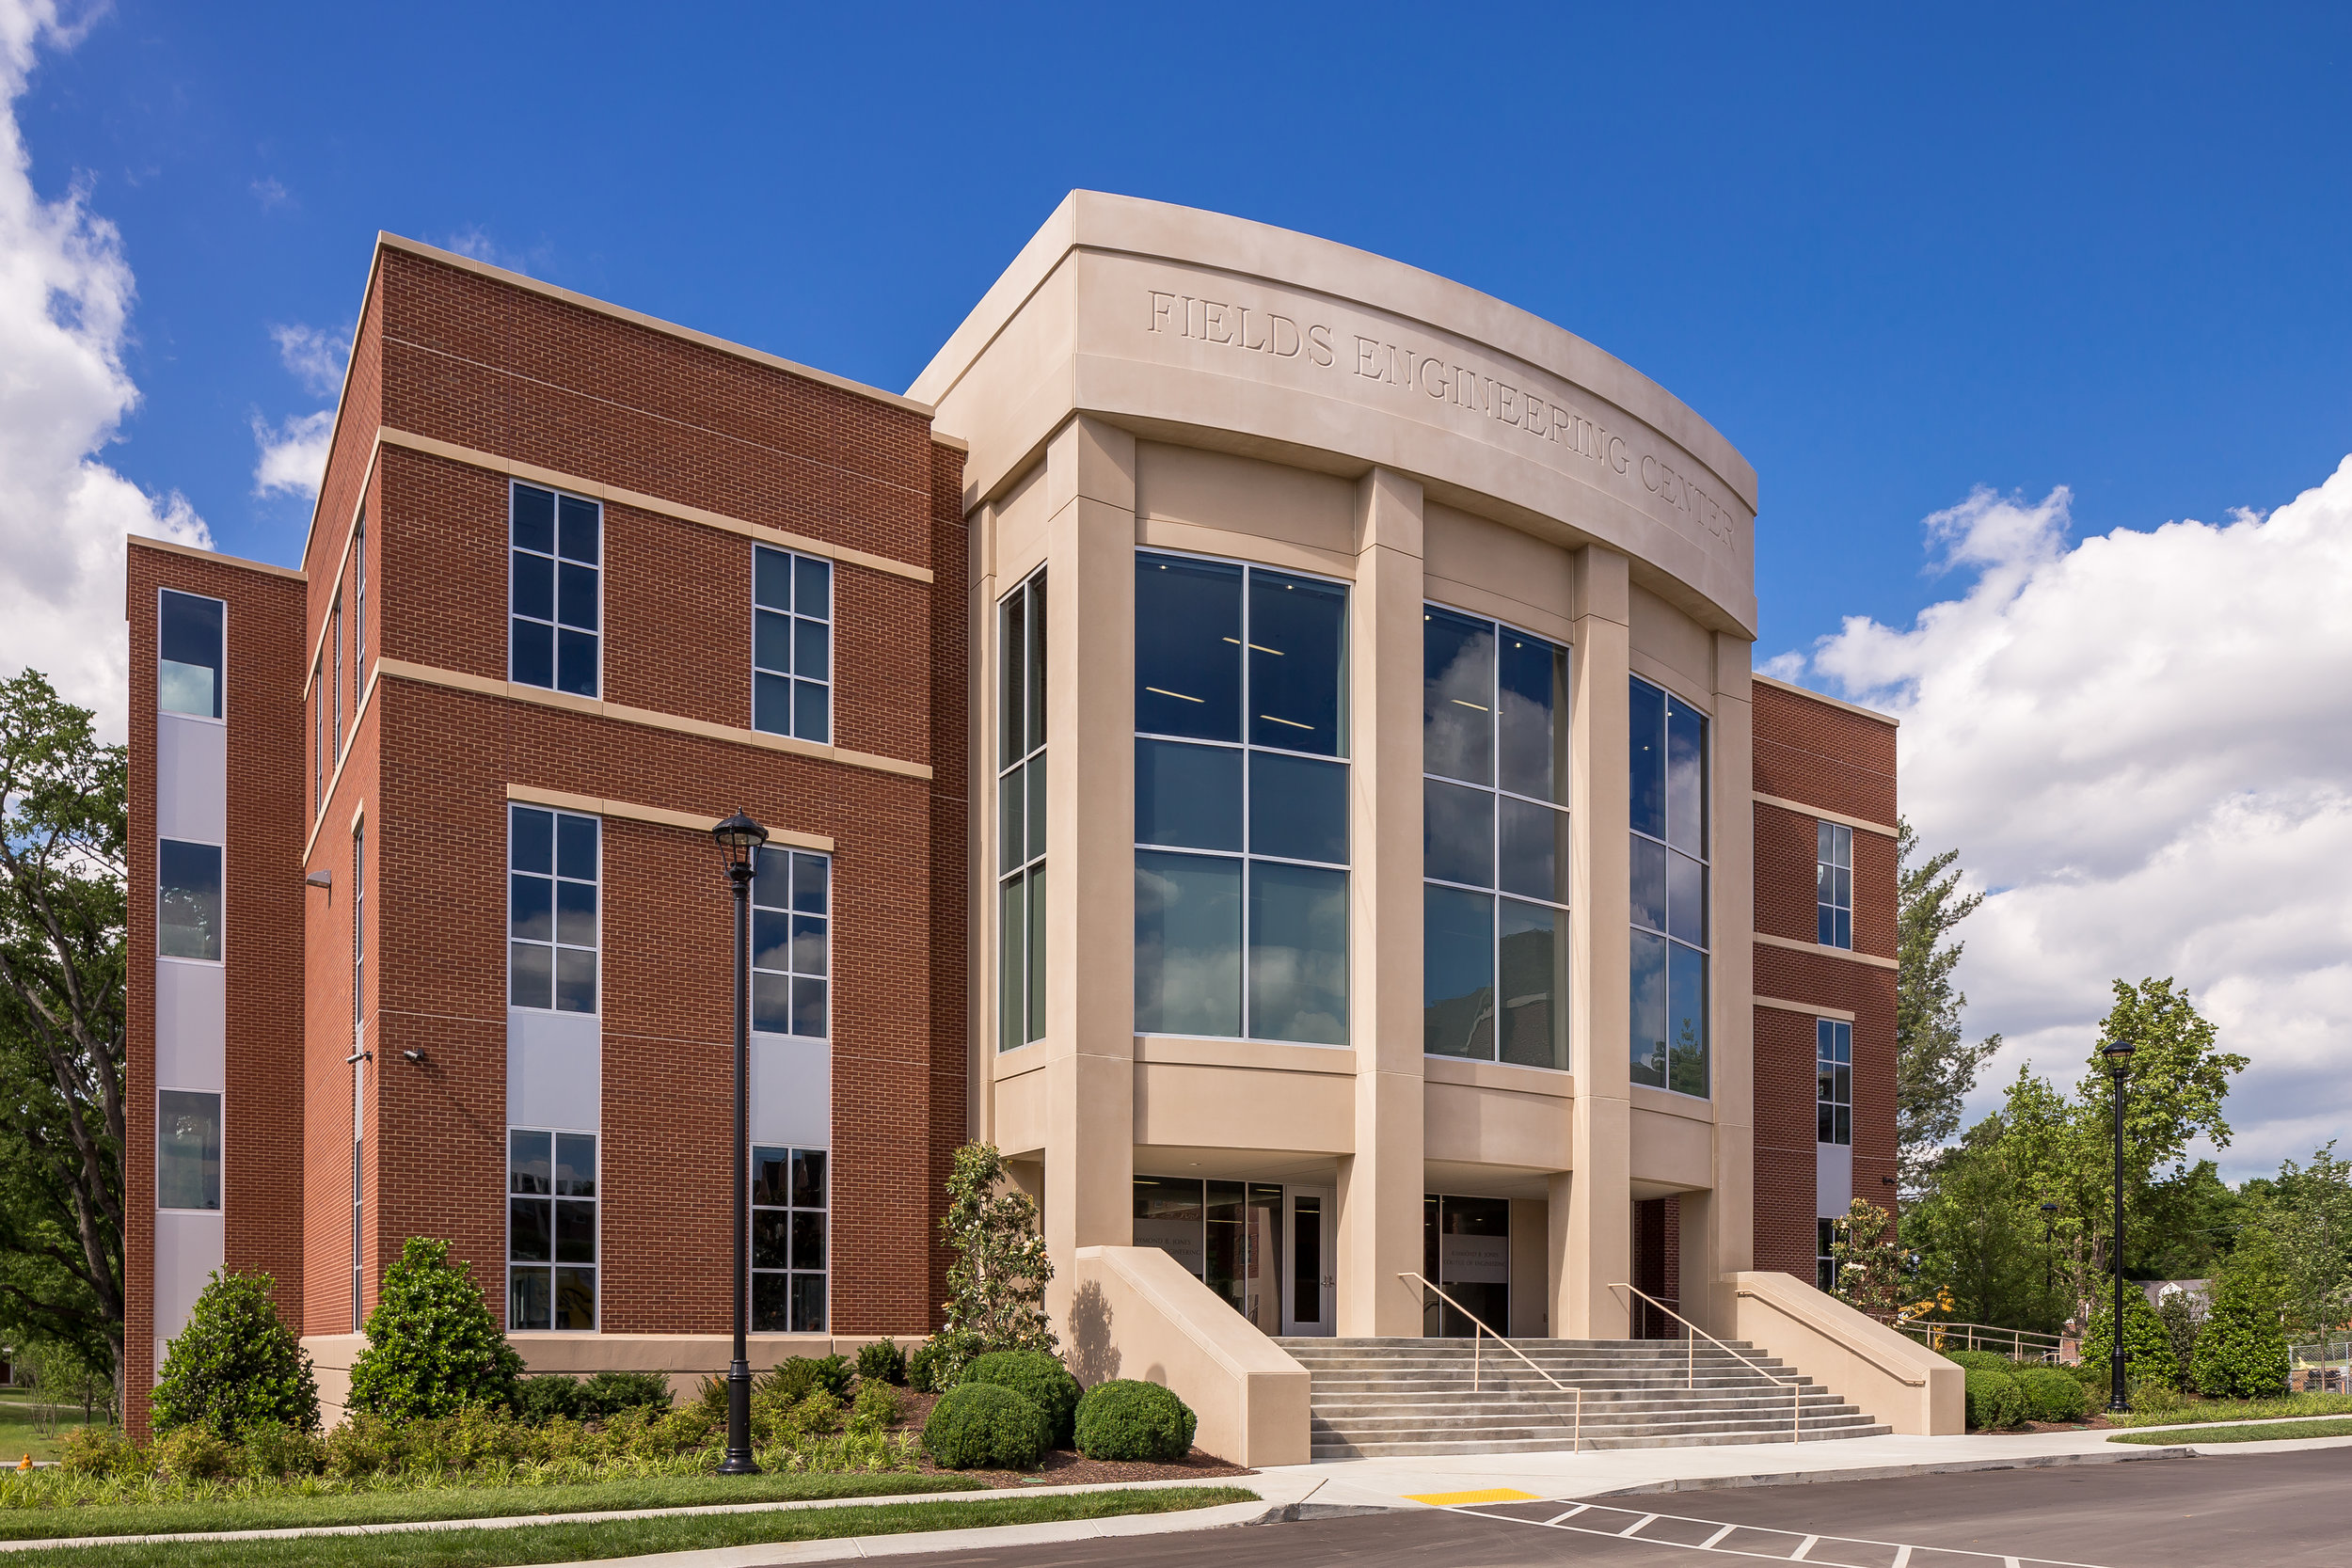 Lipscomb University Fields Engineering Center